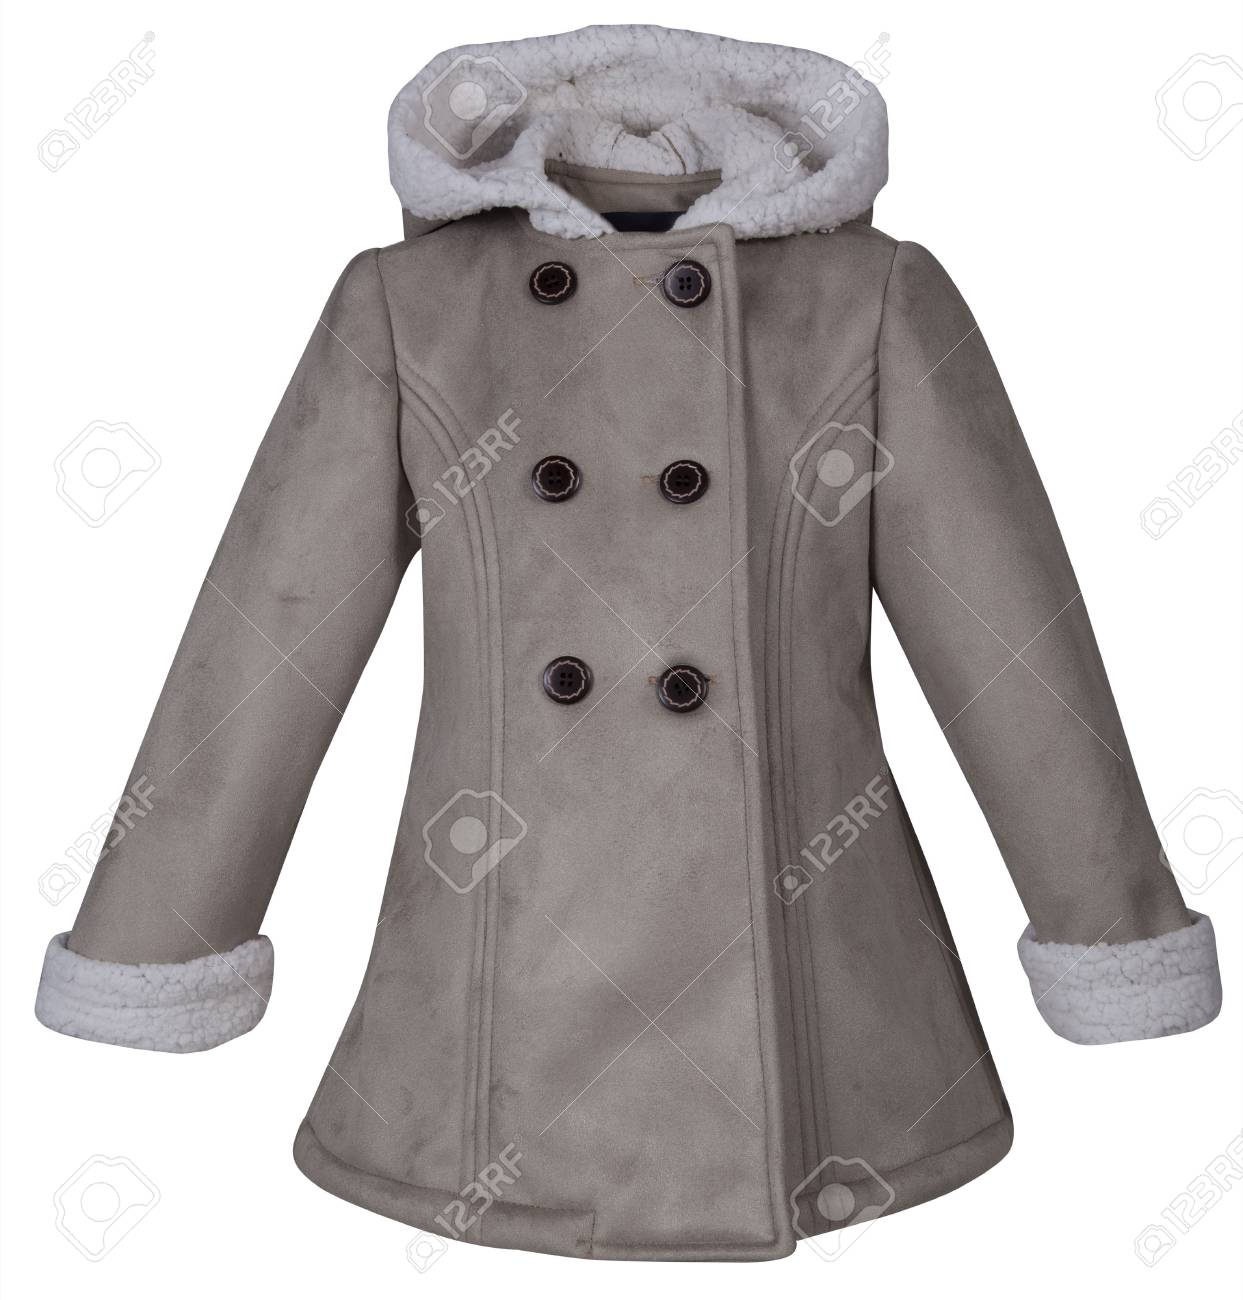 5e475249feec Baby Leather Coat With Fur Isolated On White Background. Stock Photo ...